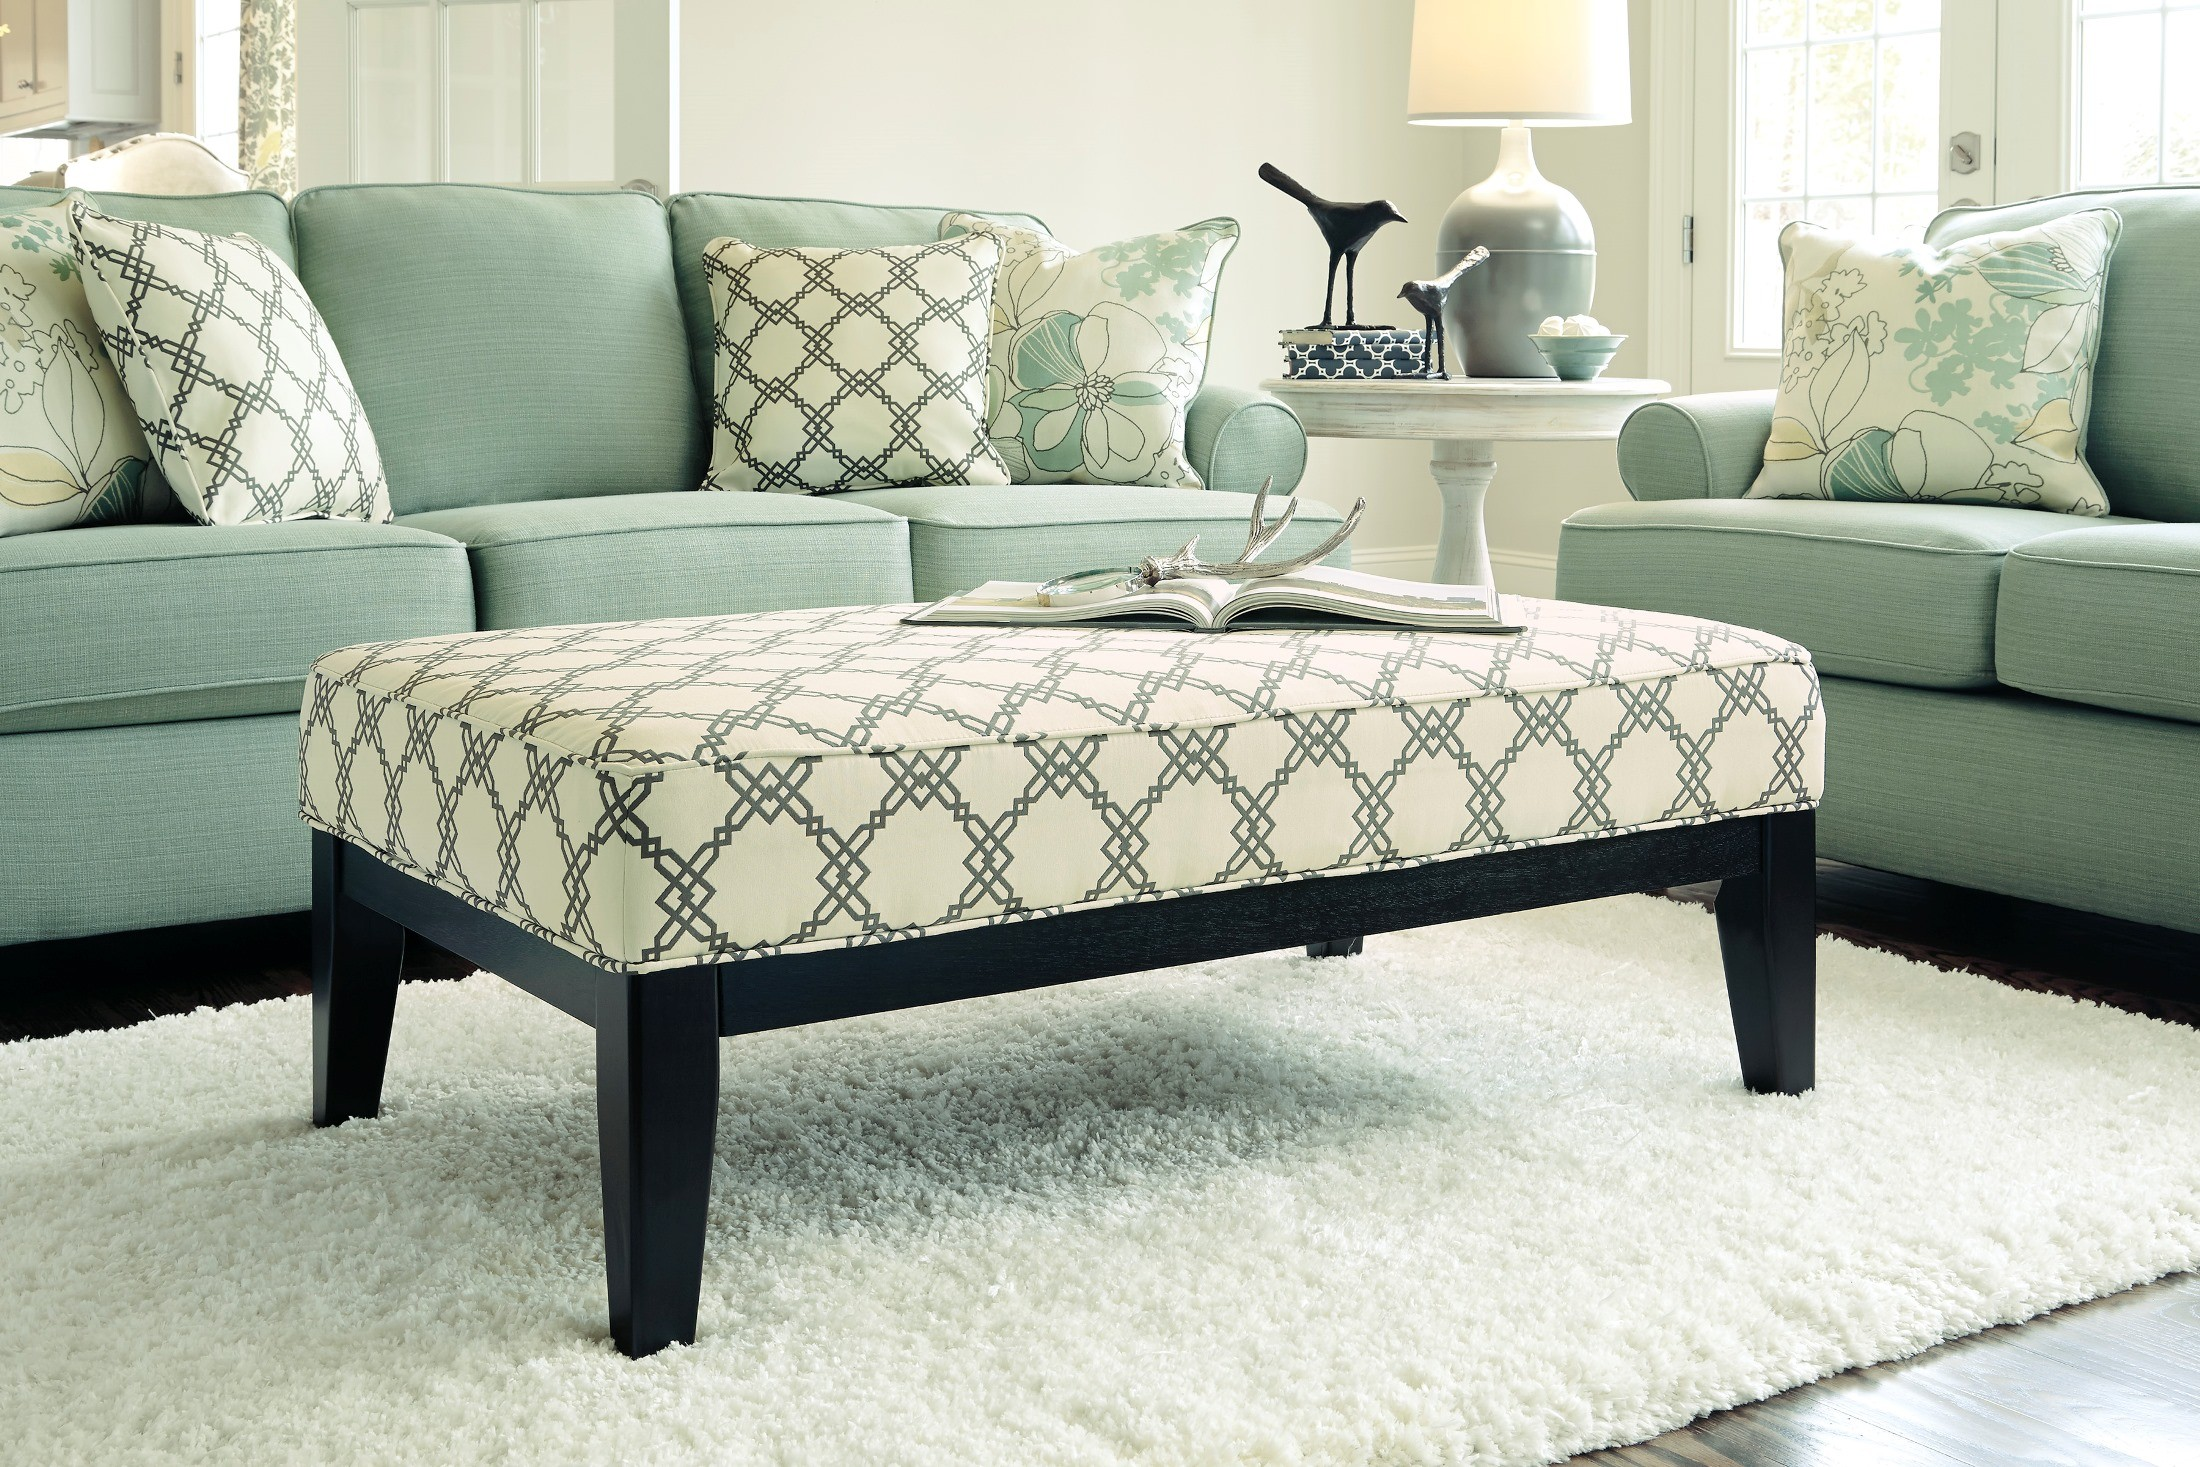 Daystar Oversized Accent Ottoman From Ashley 2820008